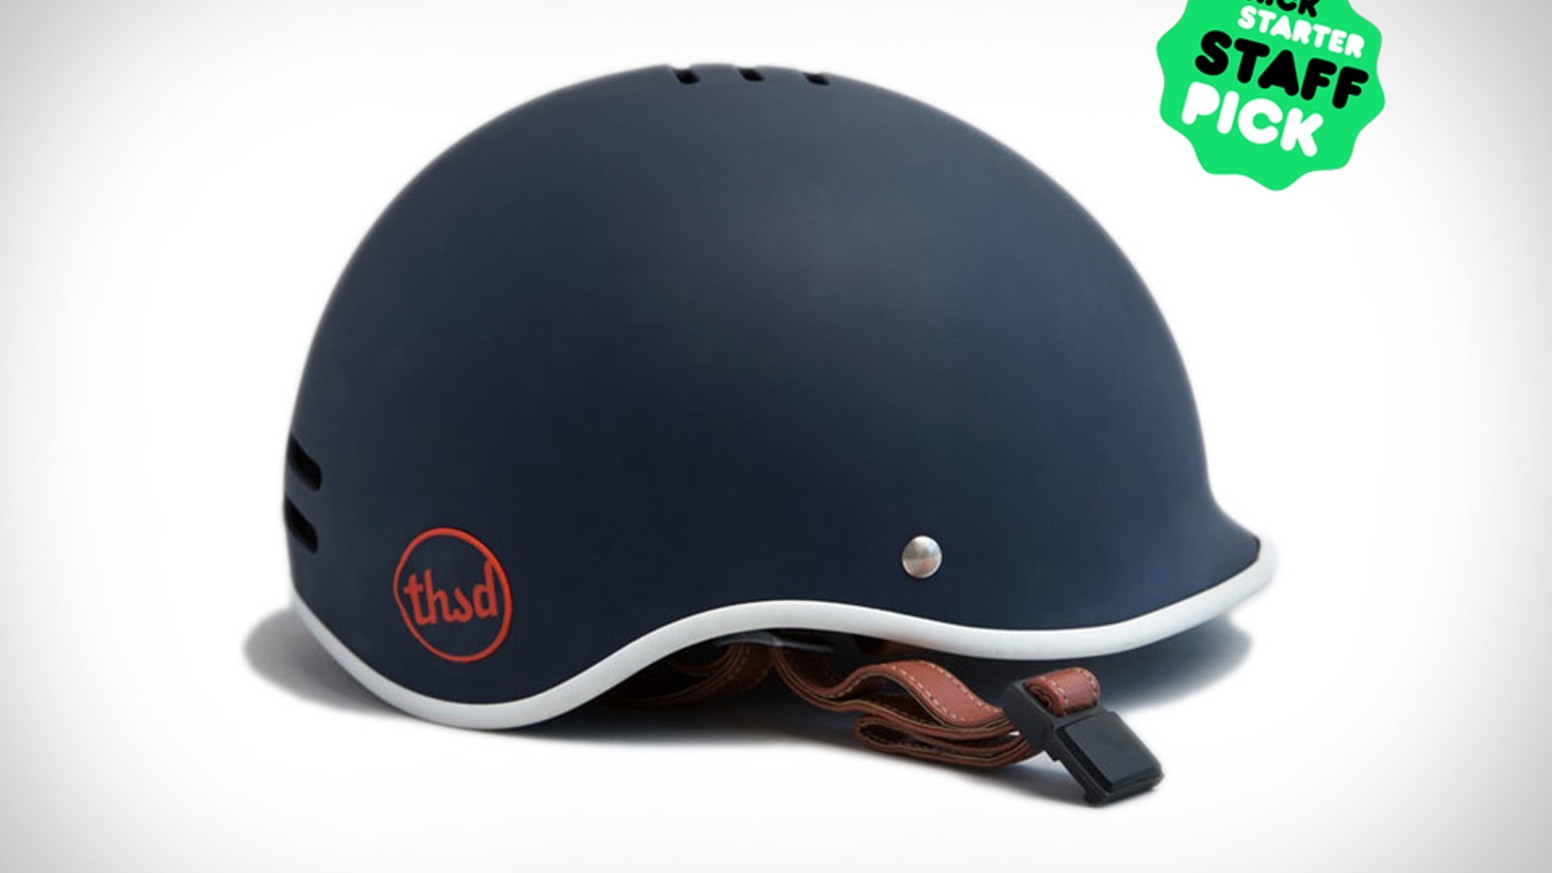 8c5275adc Thousand is a lifestyle brand with one mission  to make a bike helmet you  actually